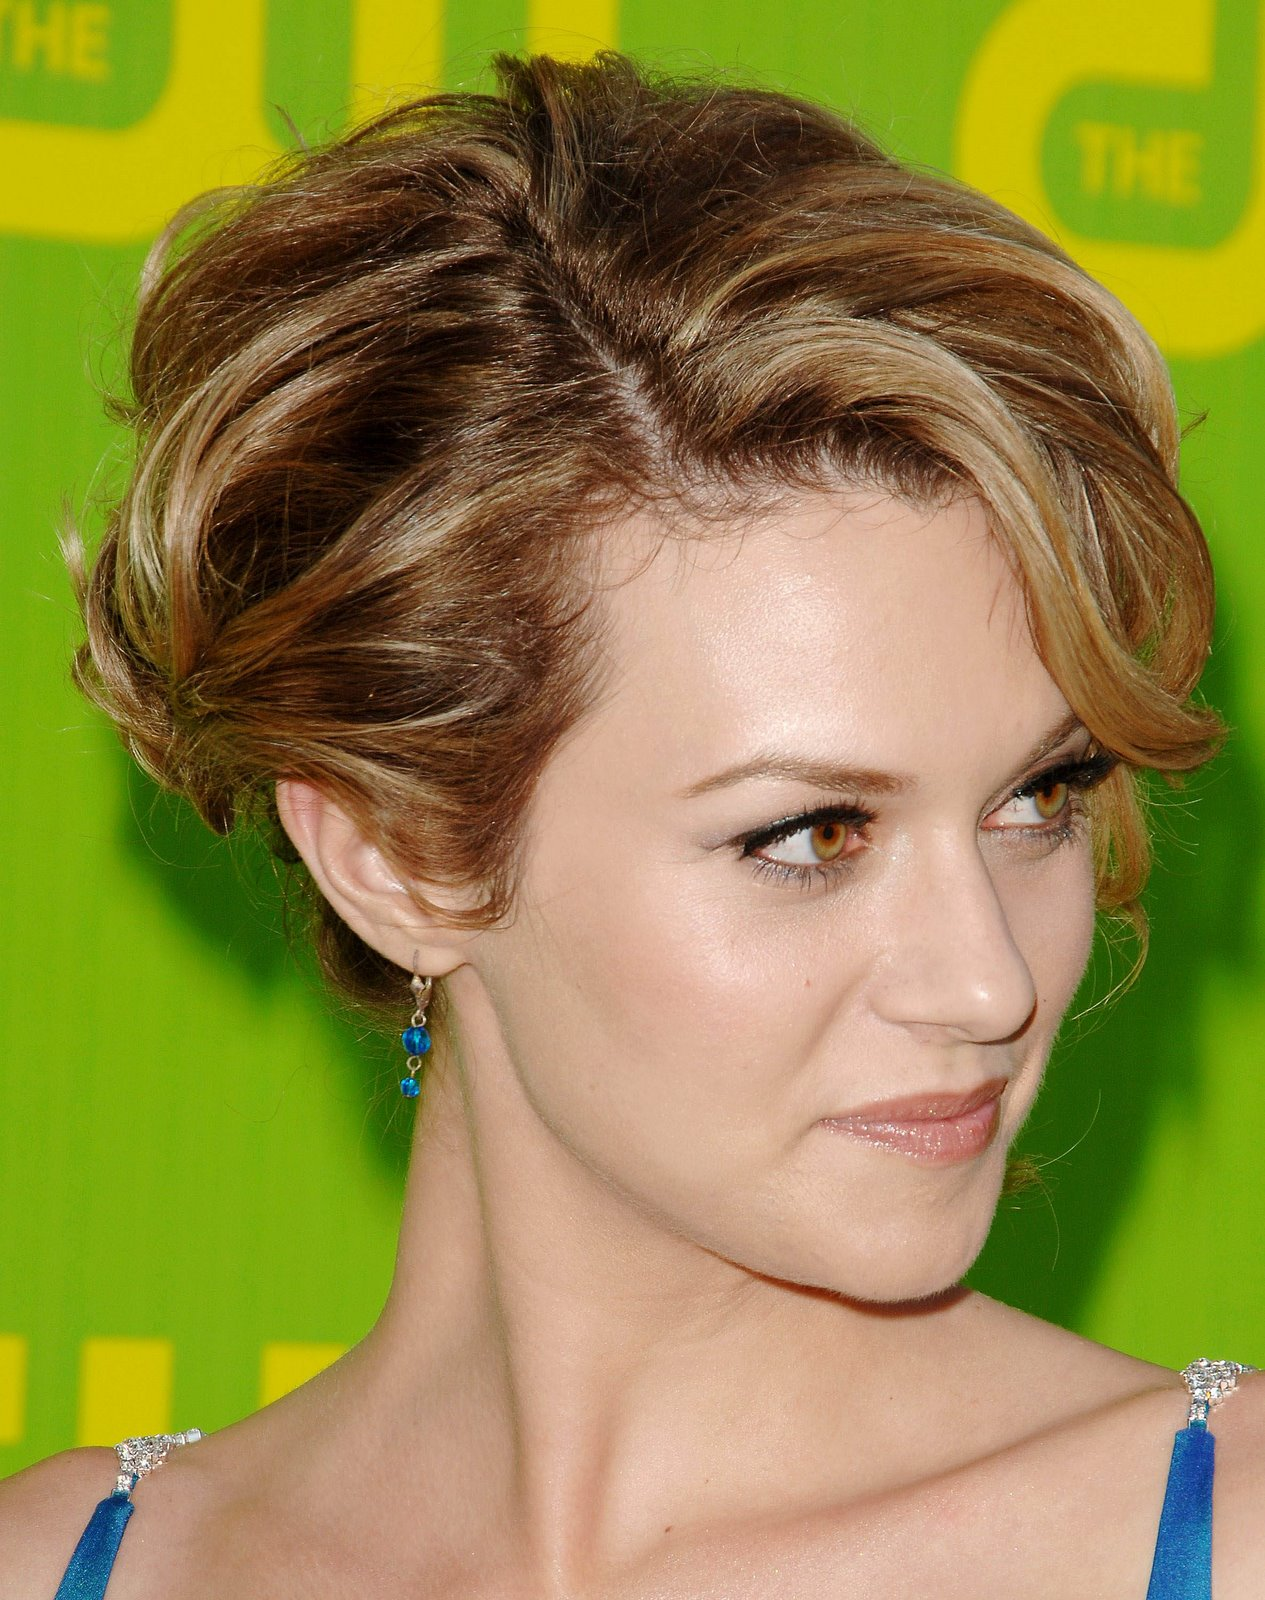 Hilarie Burton wallpapers High Resolution and Quality Download Hilarie Burton